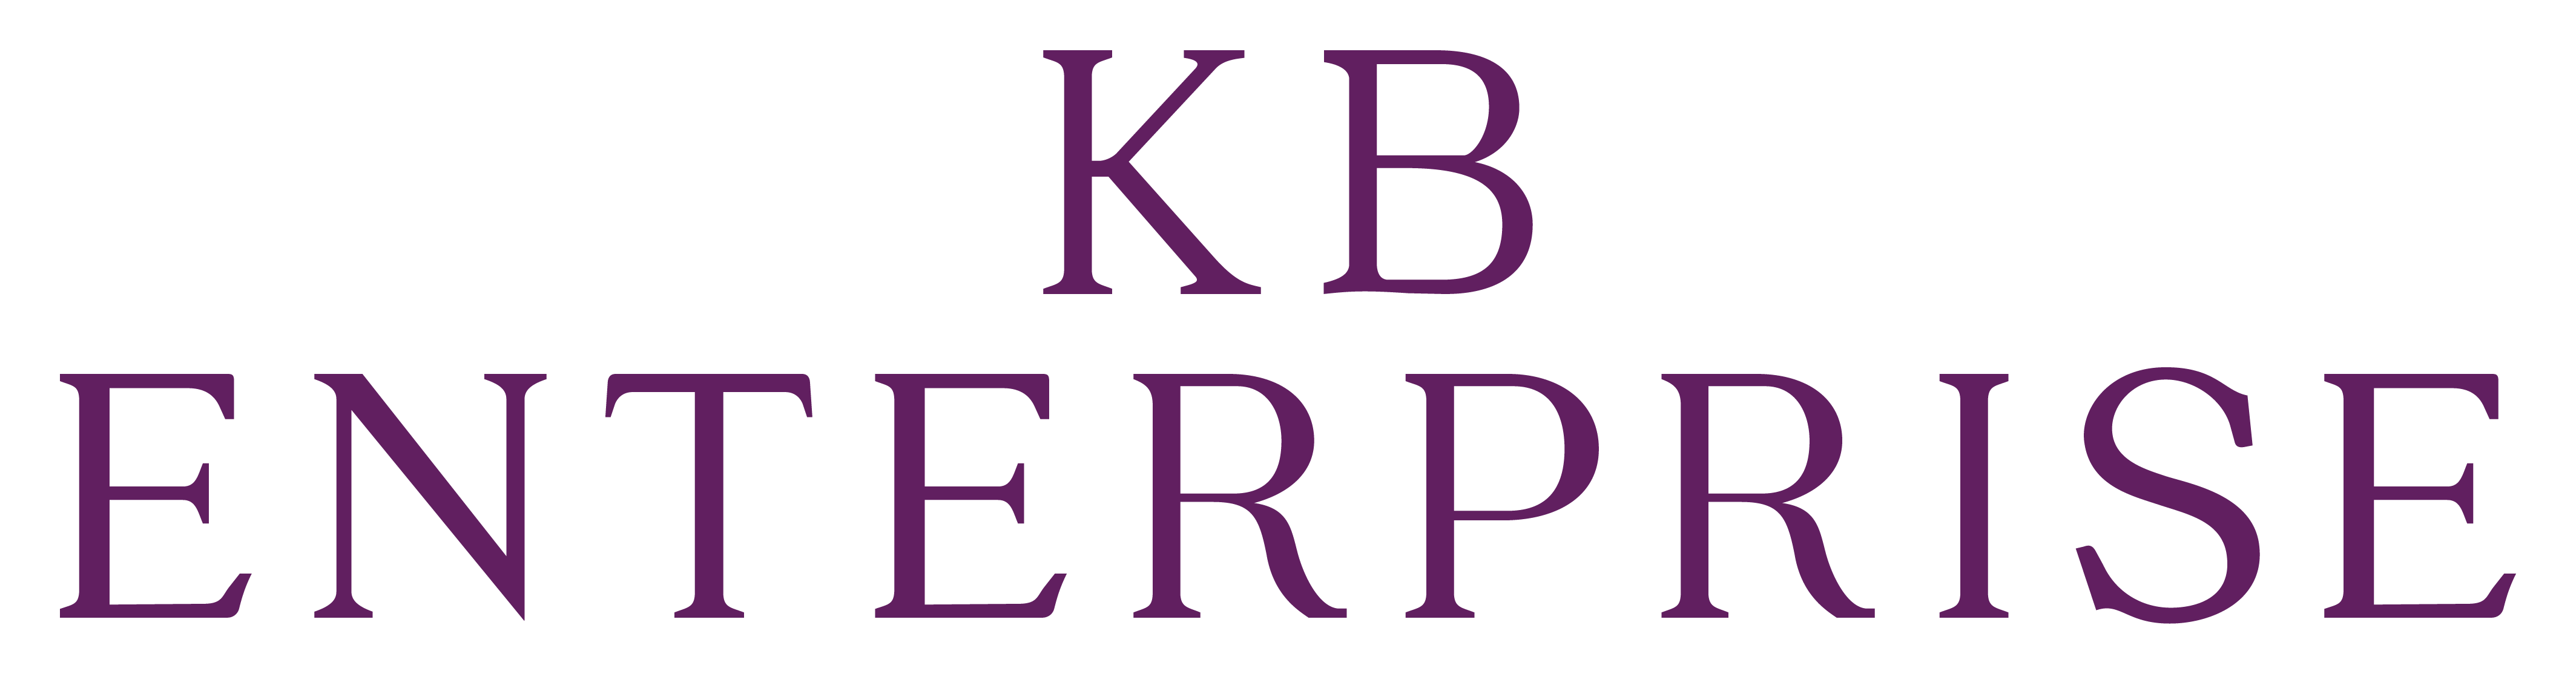 KB Enterprise